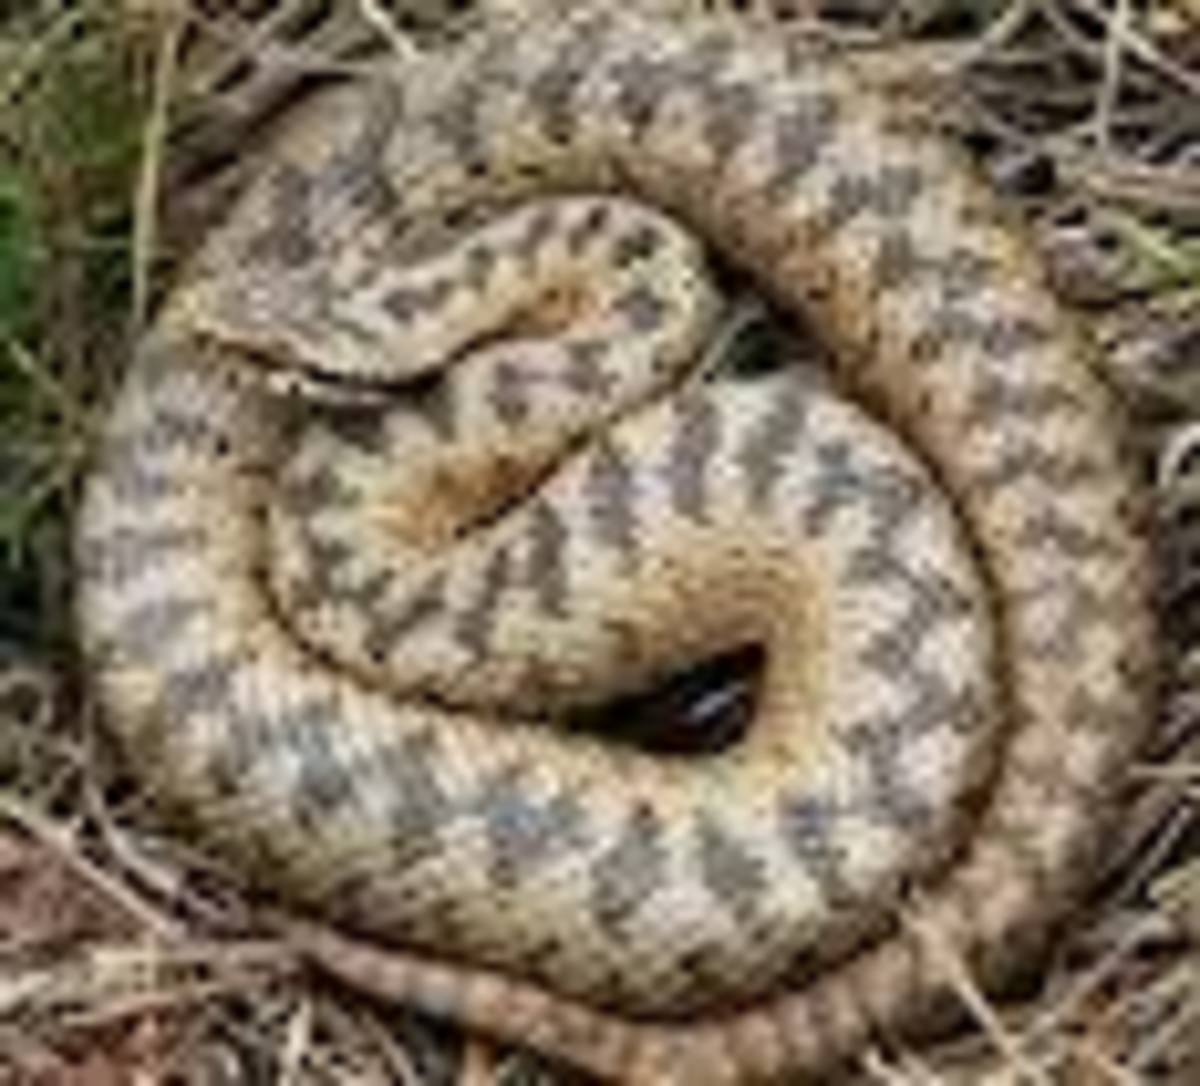 yellow-brown venomous snake